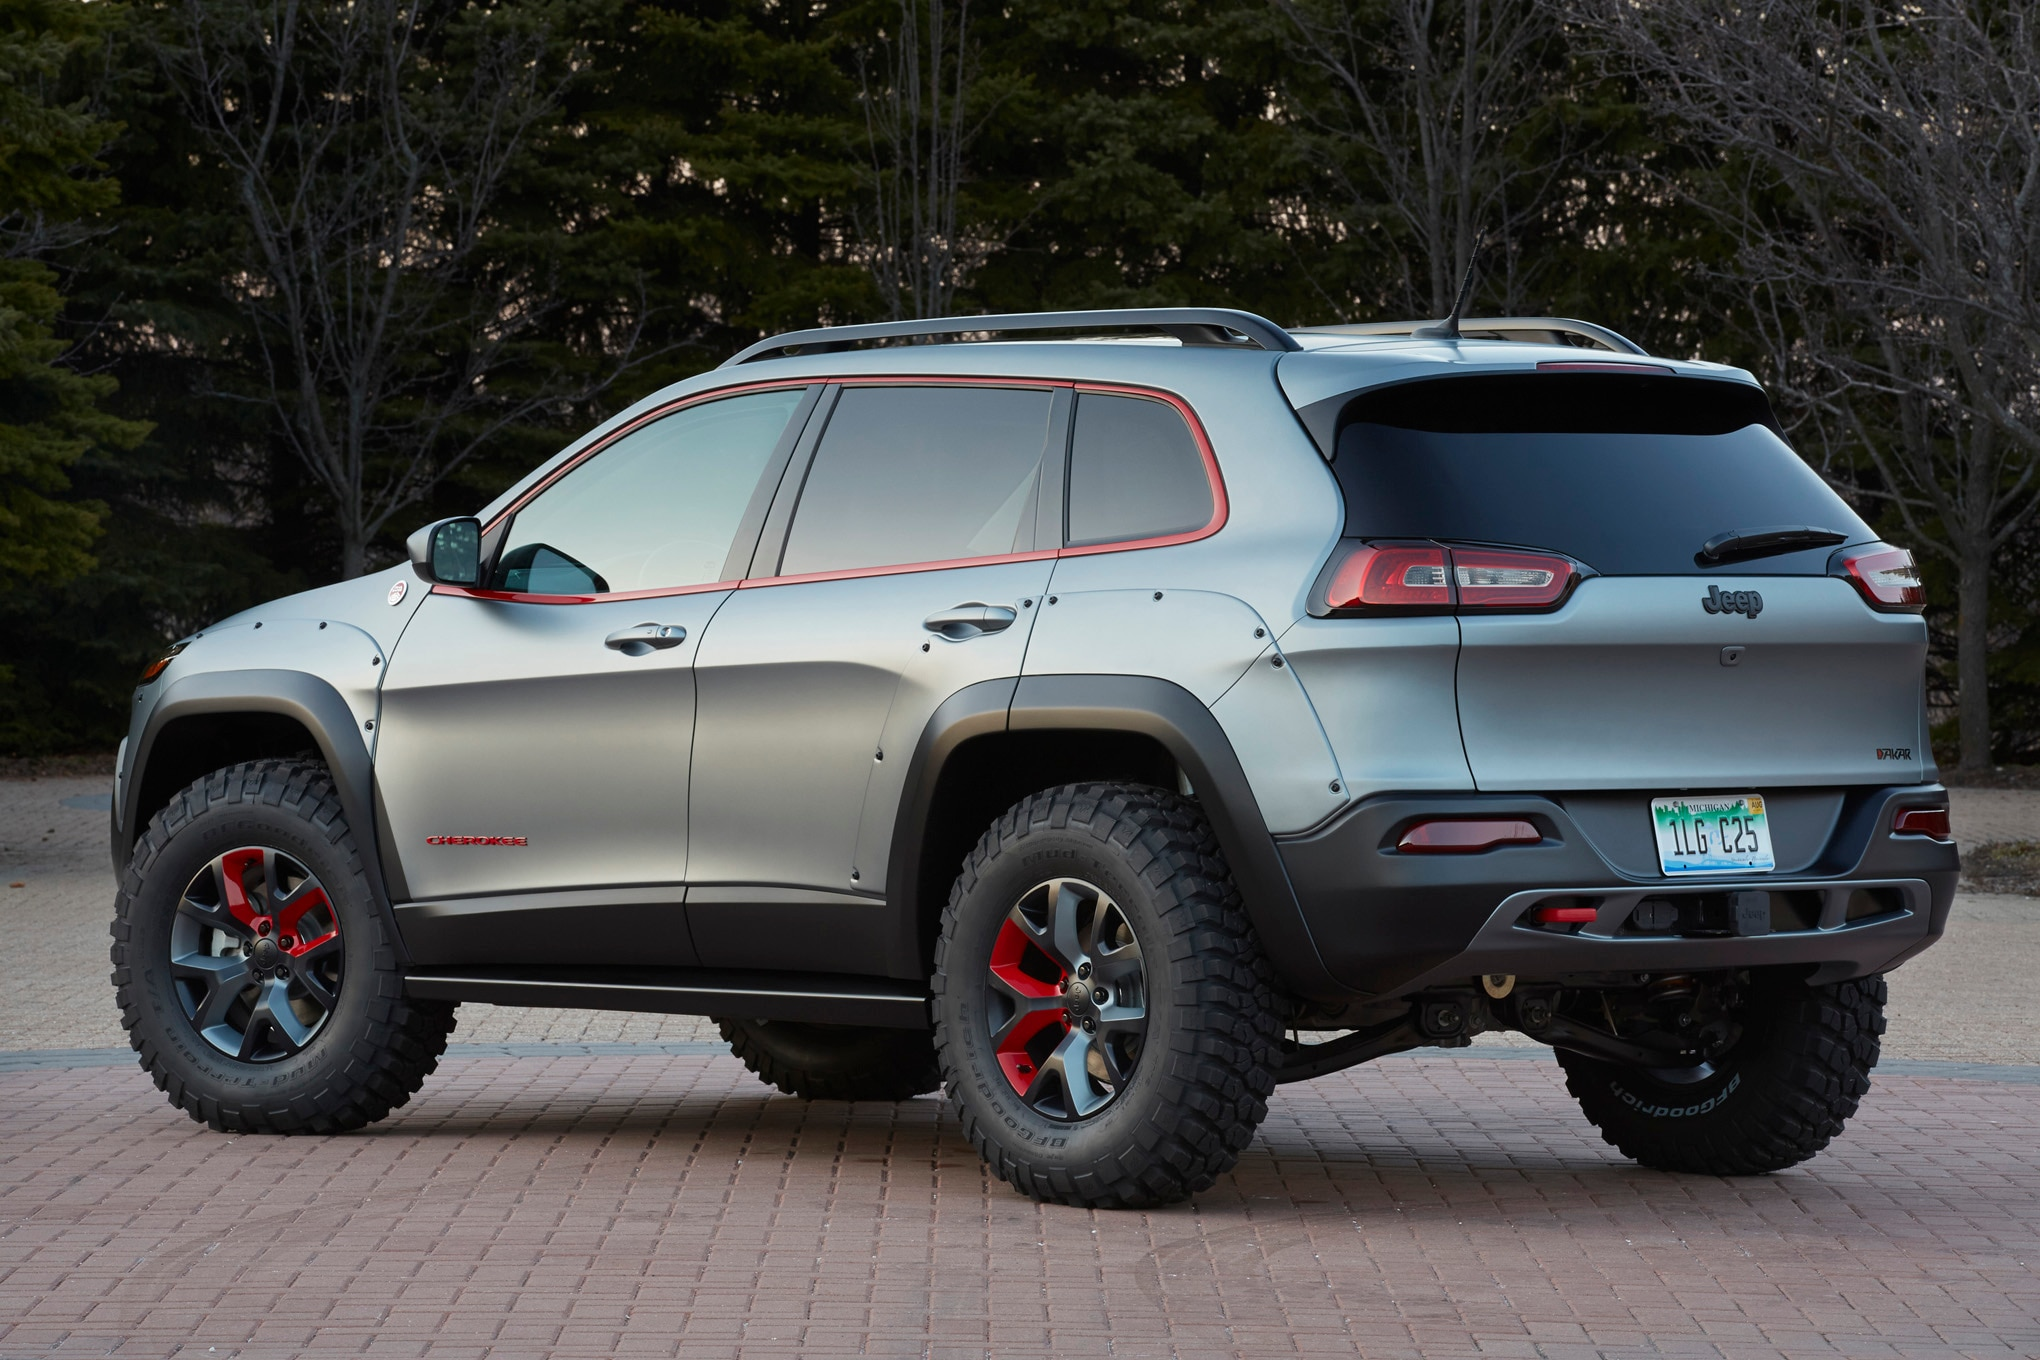 Jeep Cherokee Dakar Concept rear three quarter